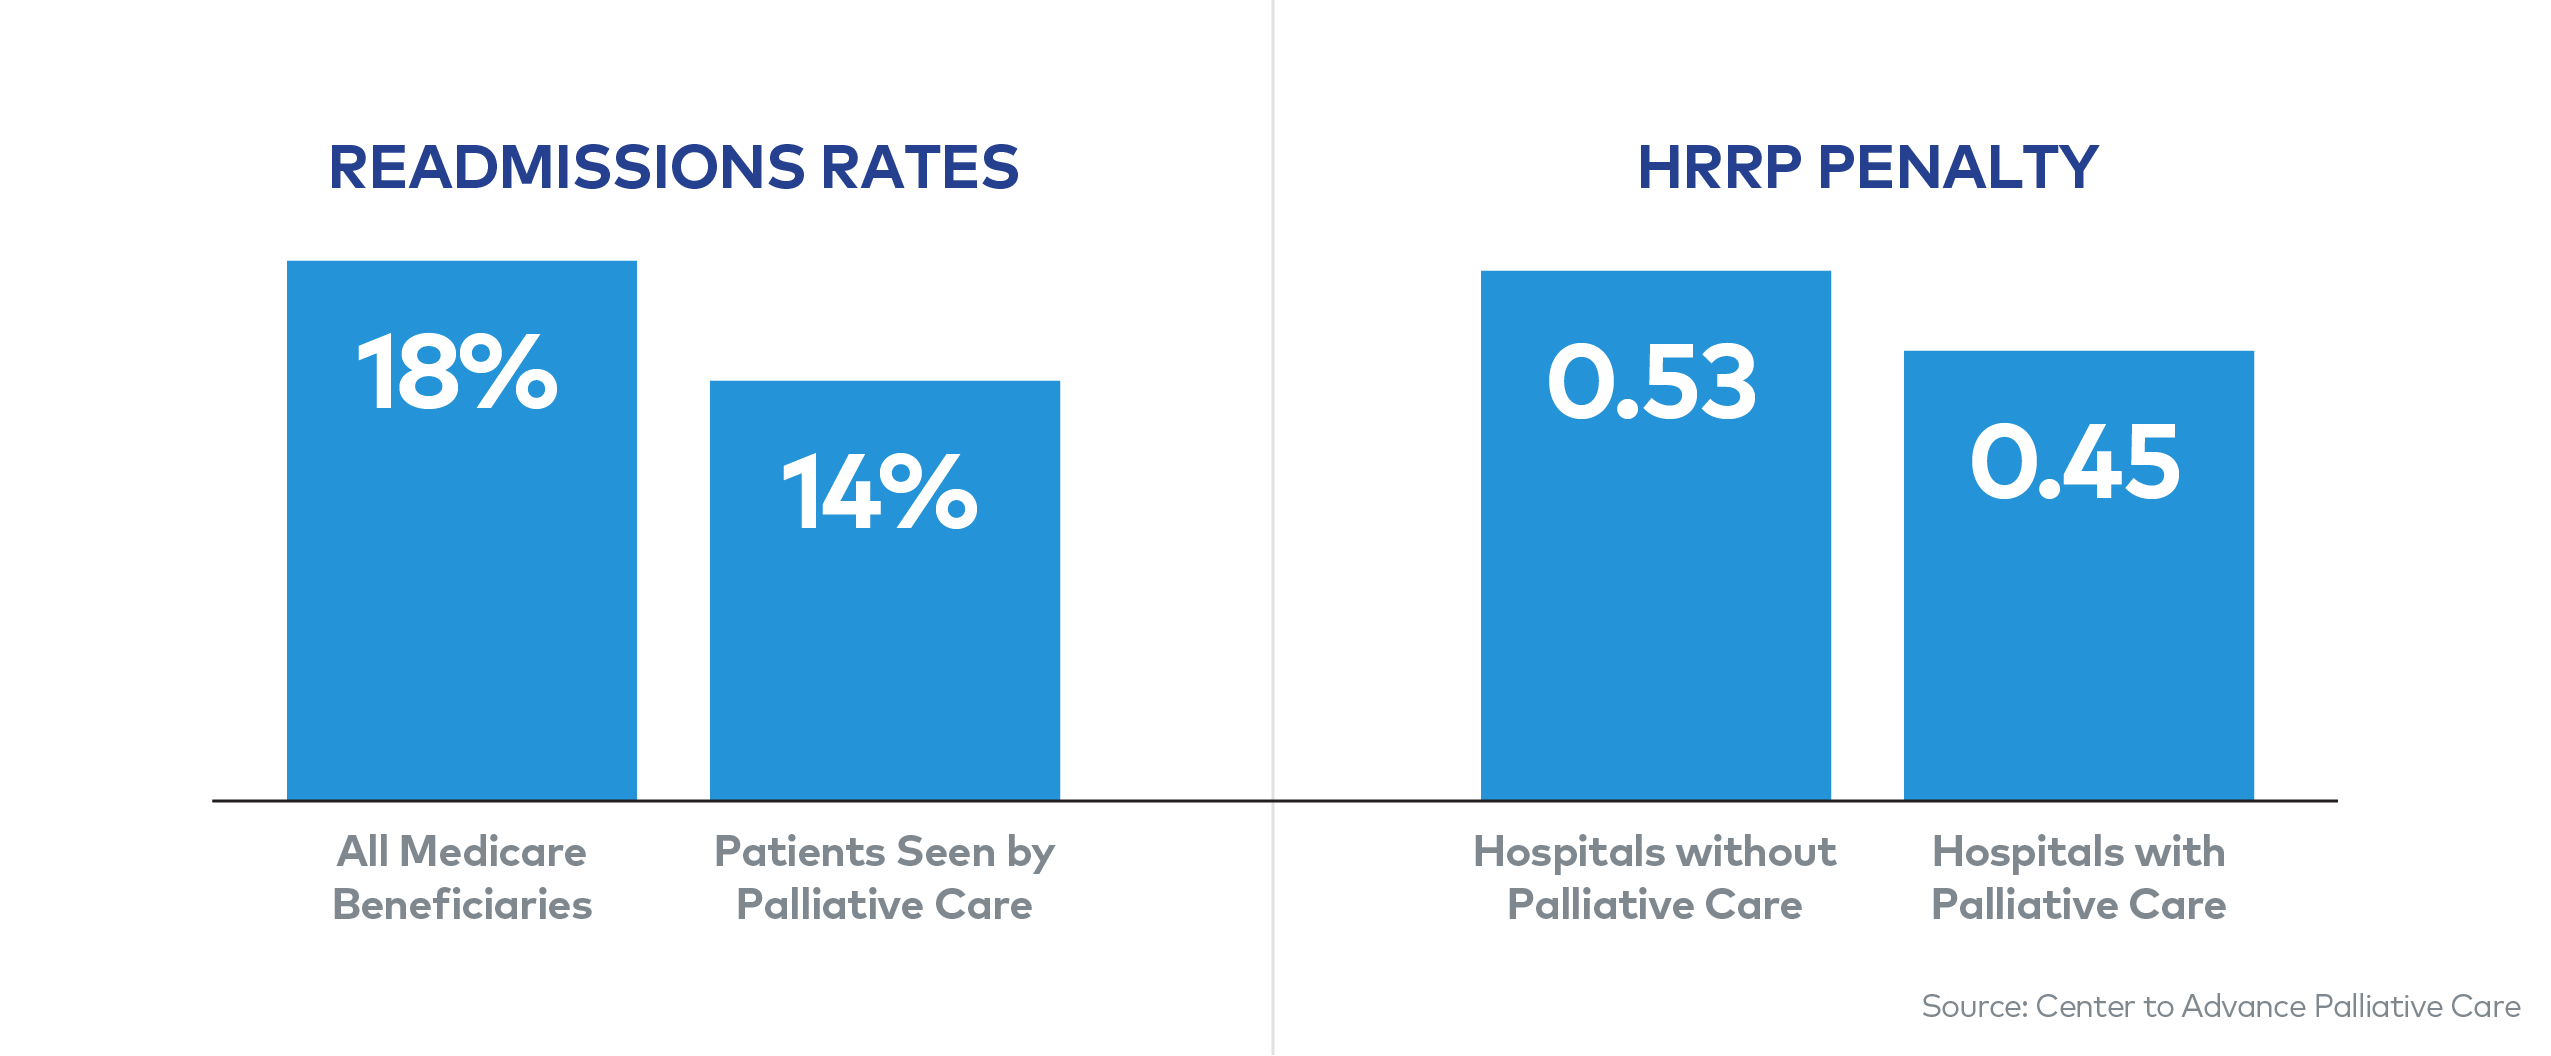 Palliative Care Reduces Re-Admission Rates and Penalties